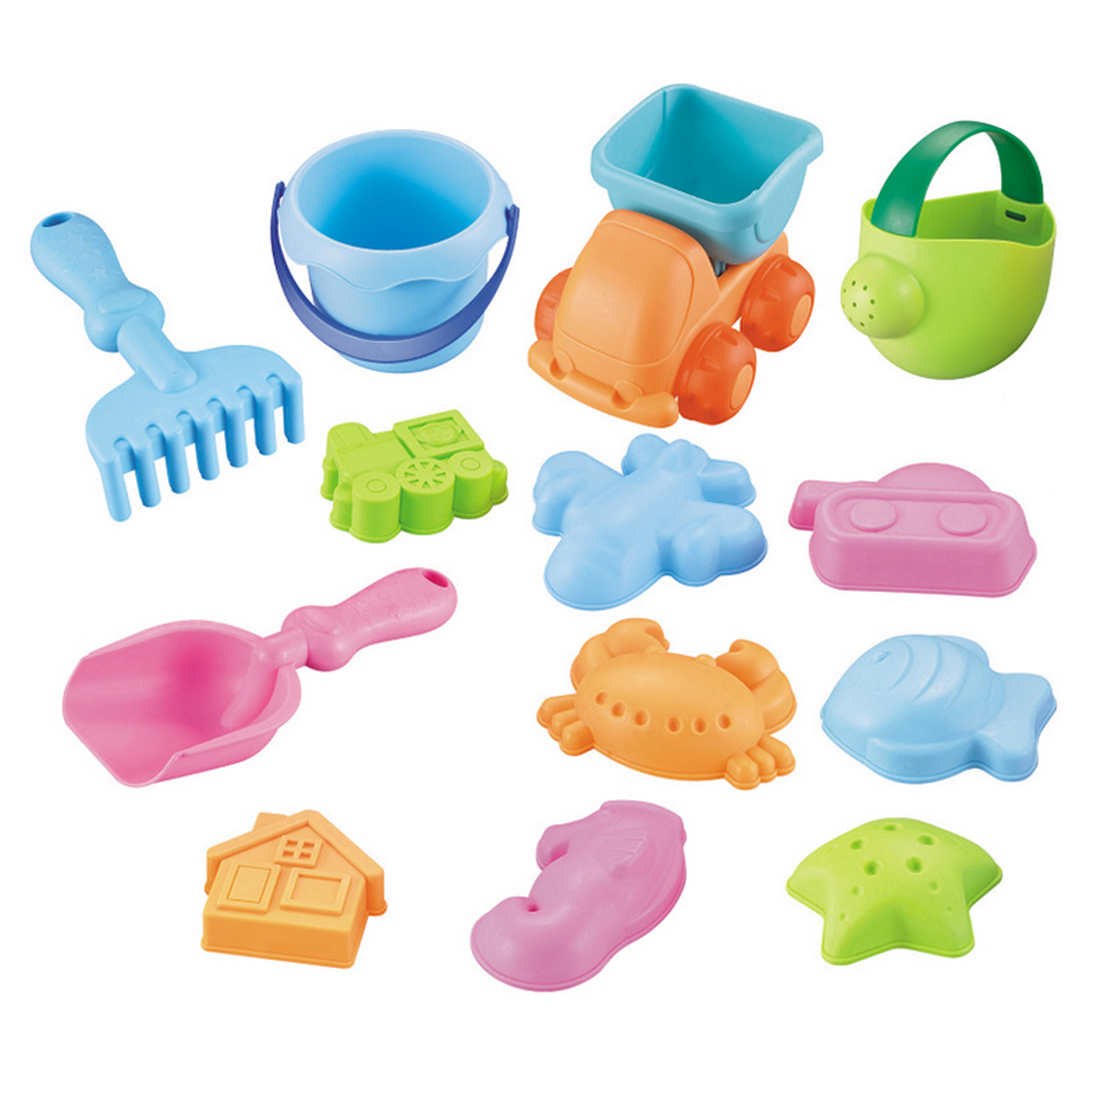 13Pcs Beach Sand Toy Set Bucket Shovels Watering Can Children Safety Soft Plastic Toys - Color Random